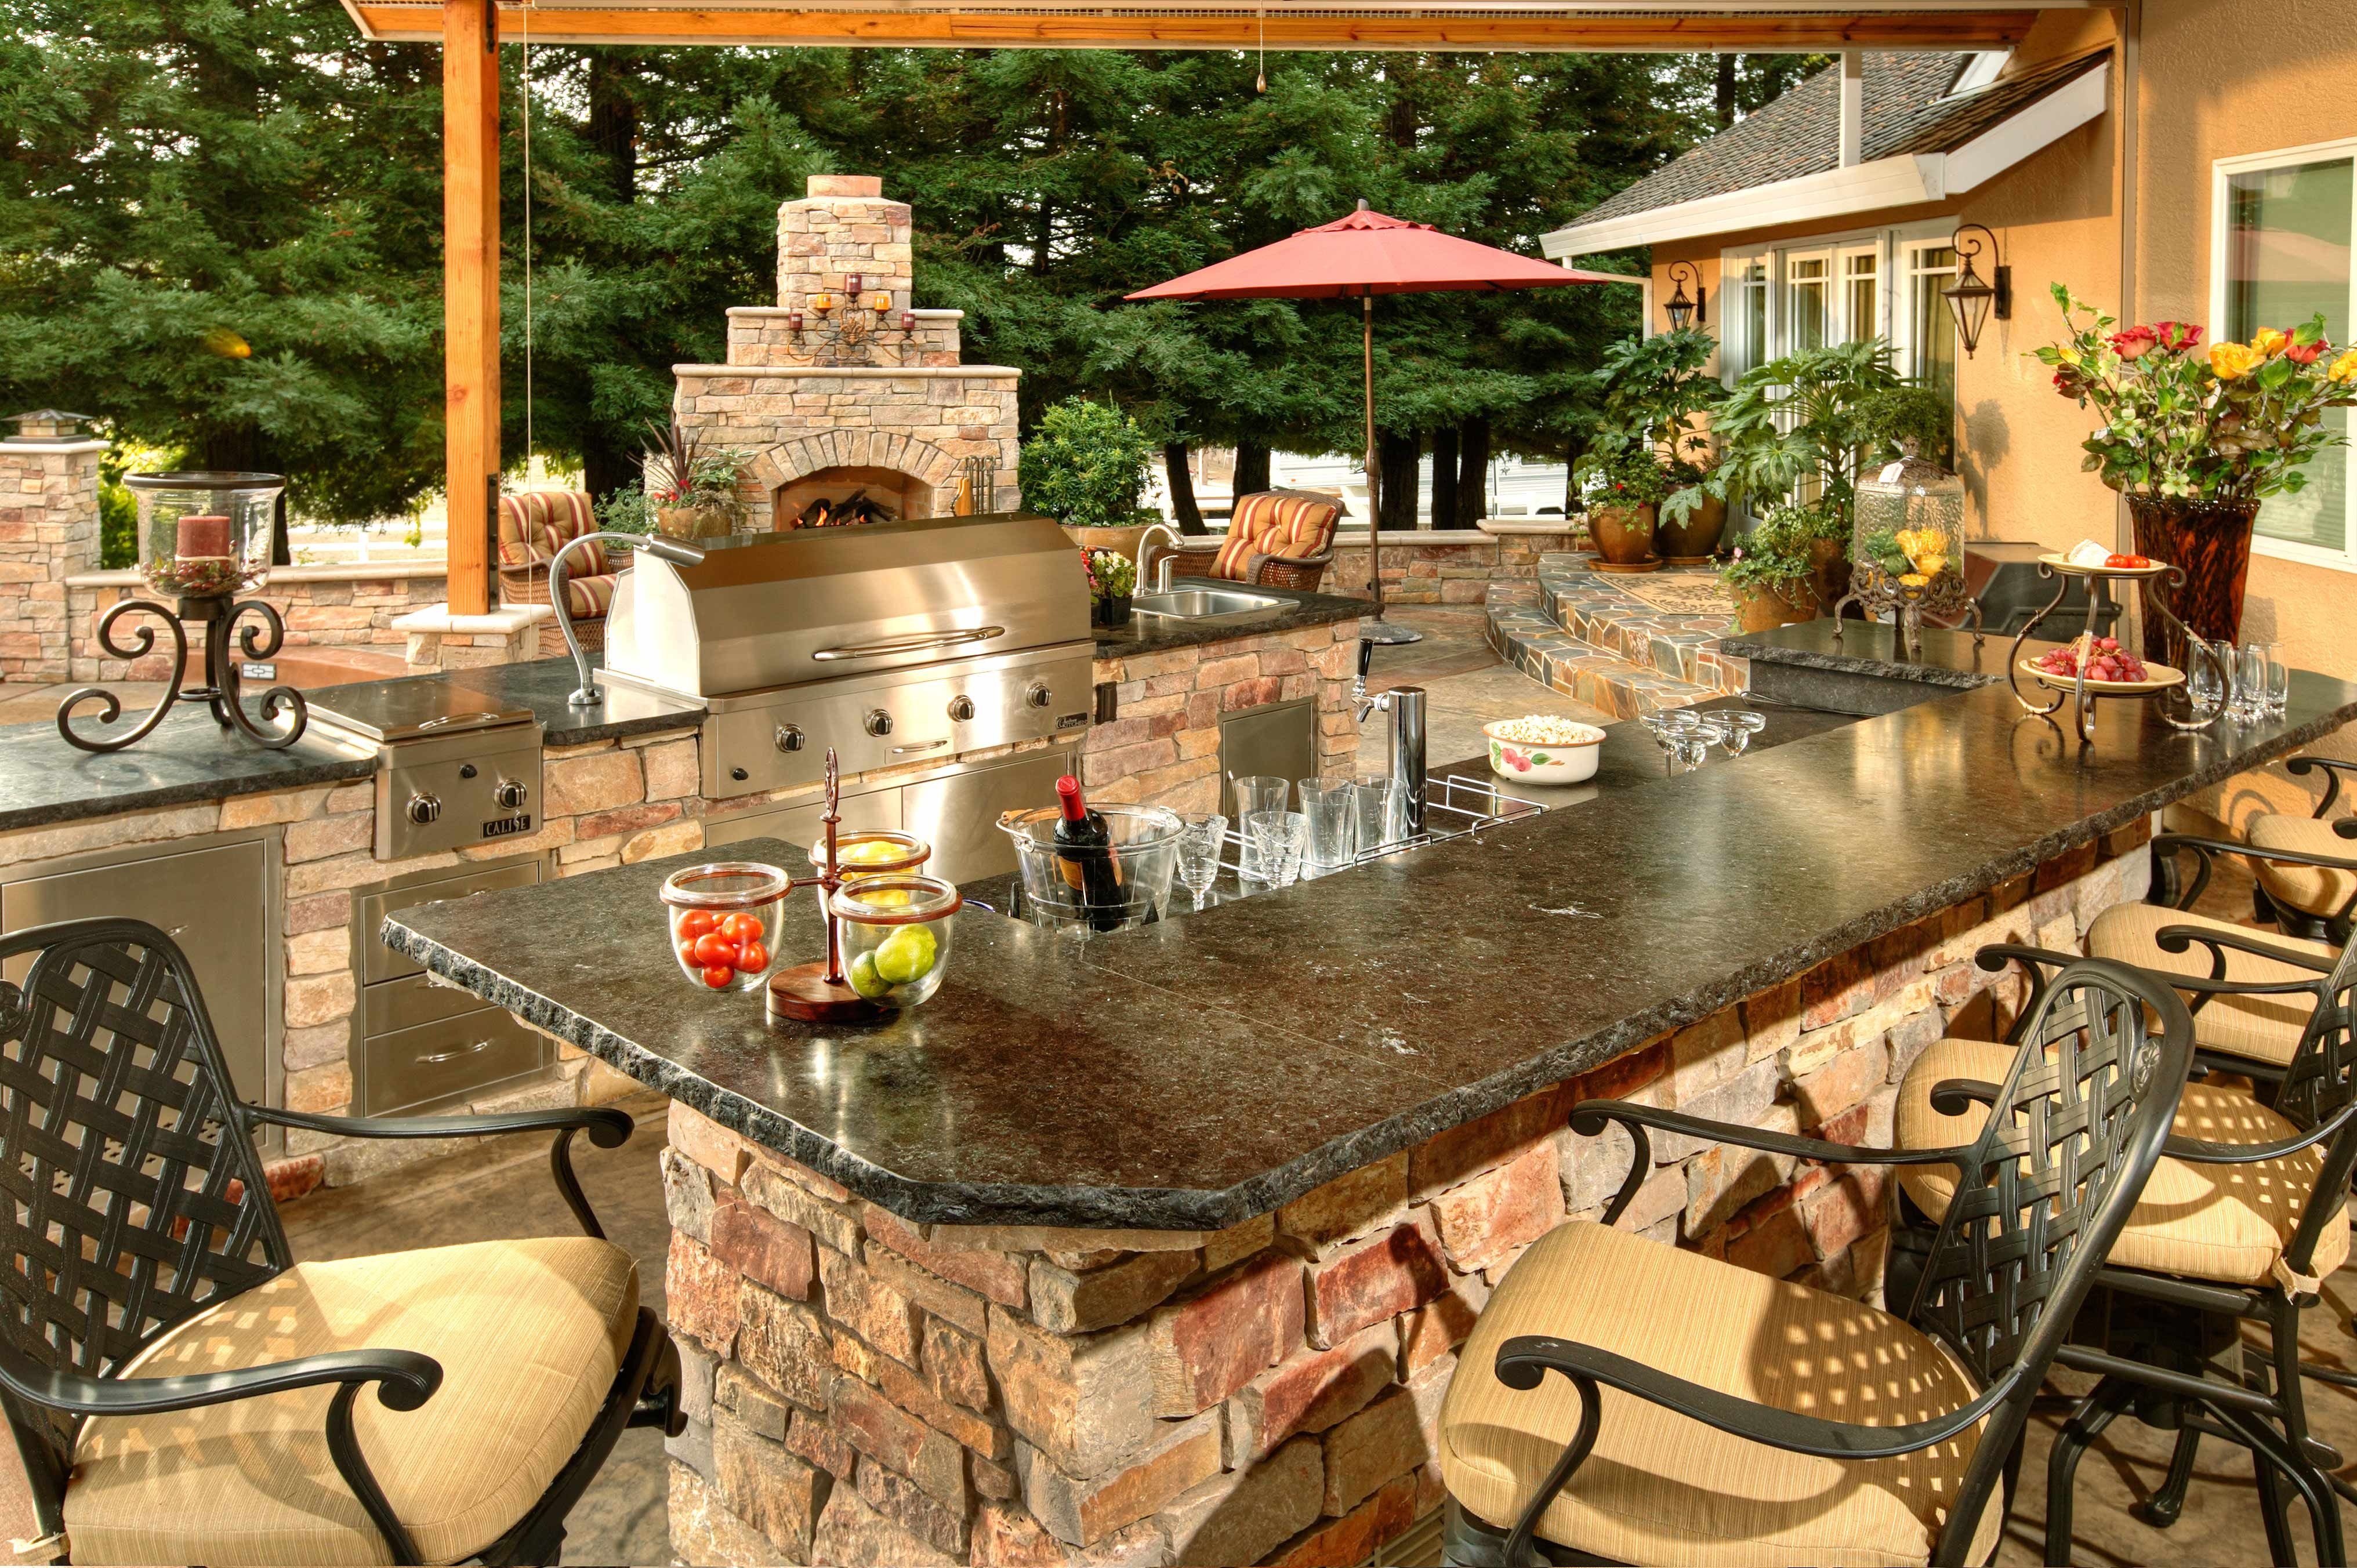 Custom Designed Outdoor Kitchen we fabricate to your